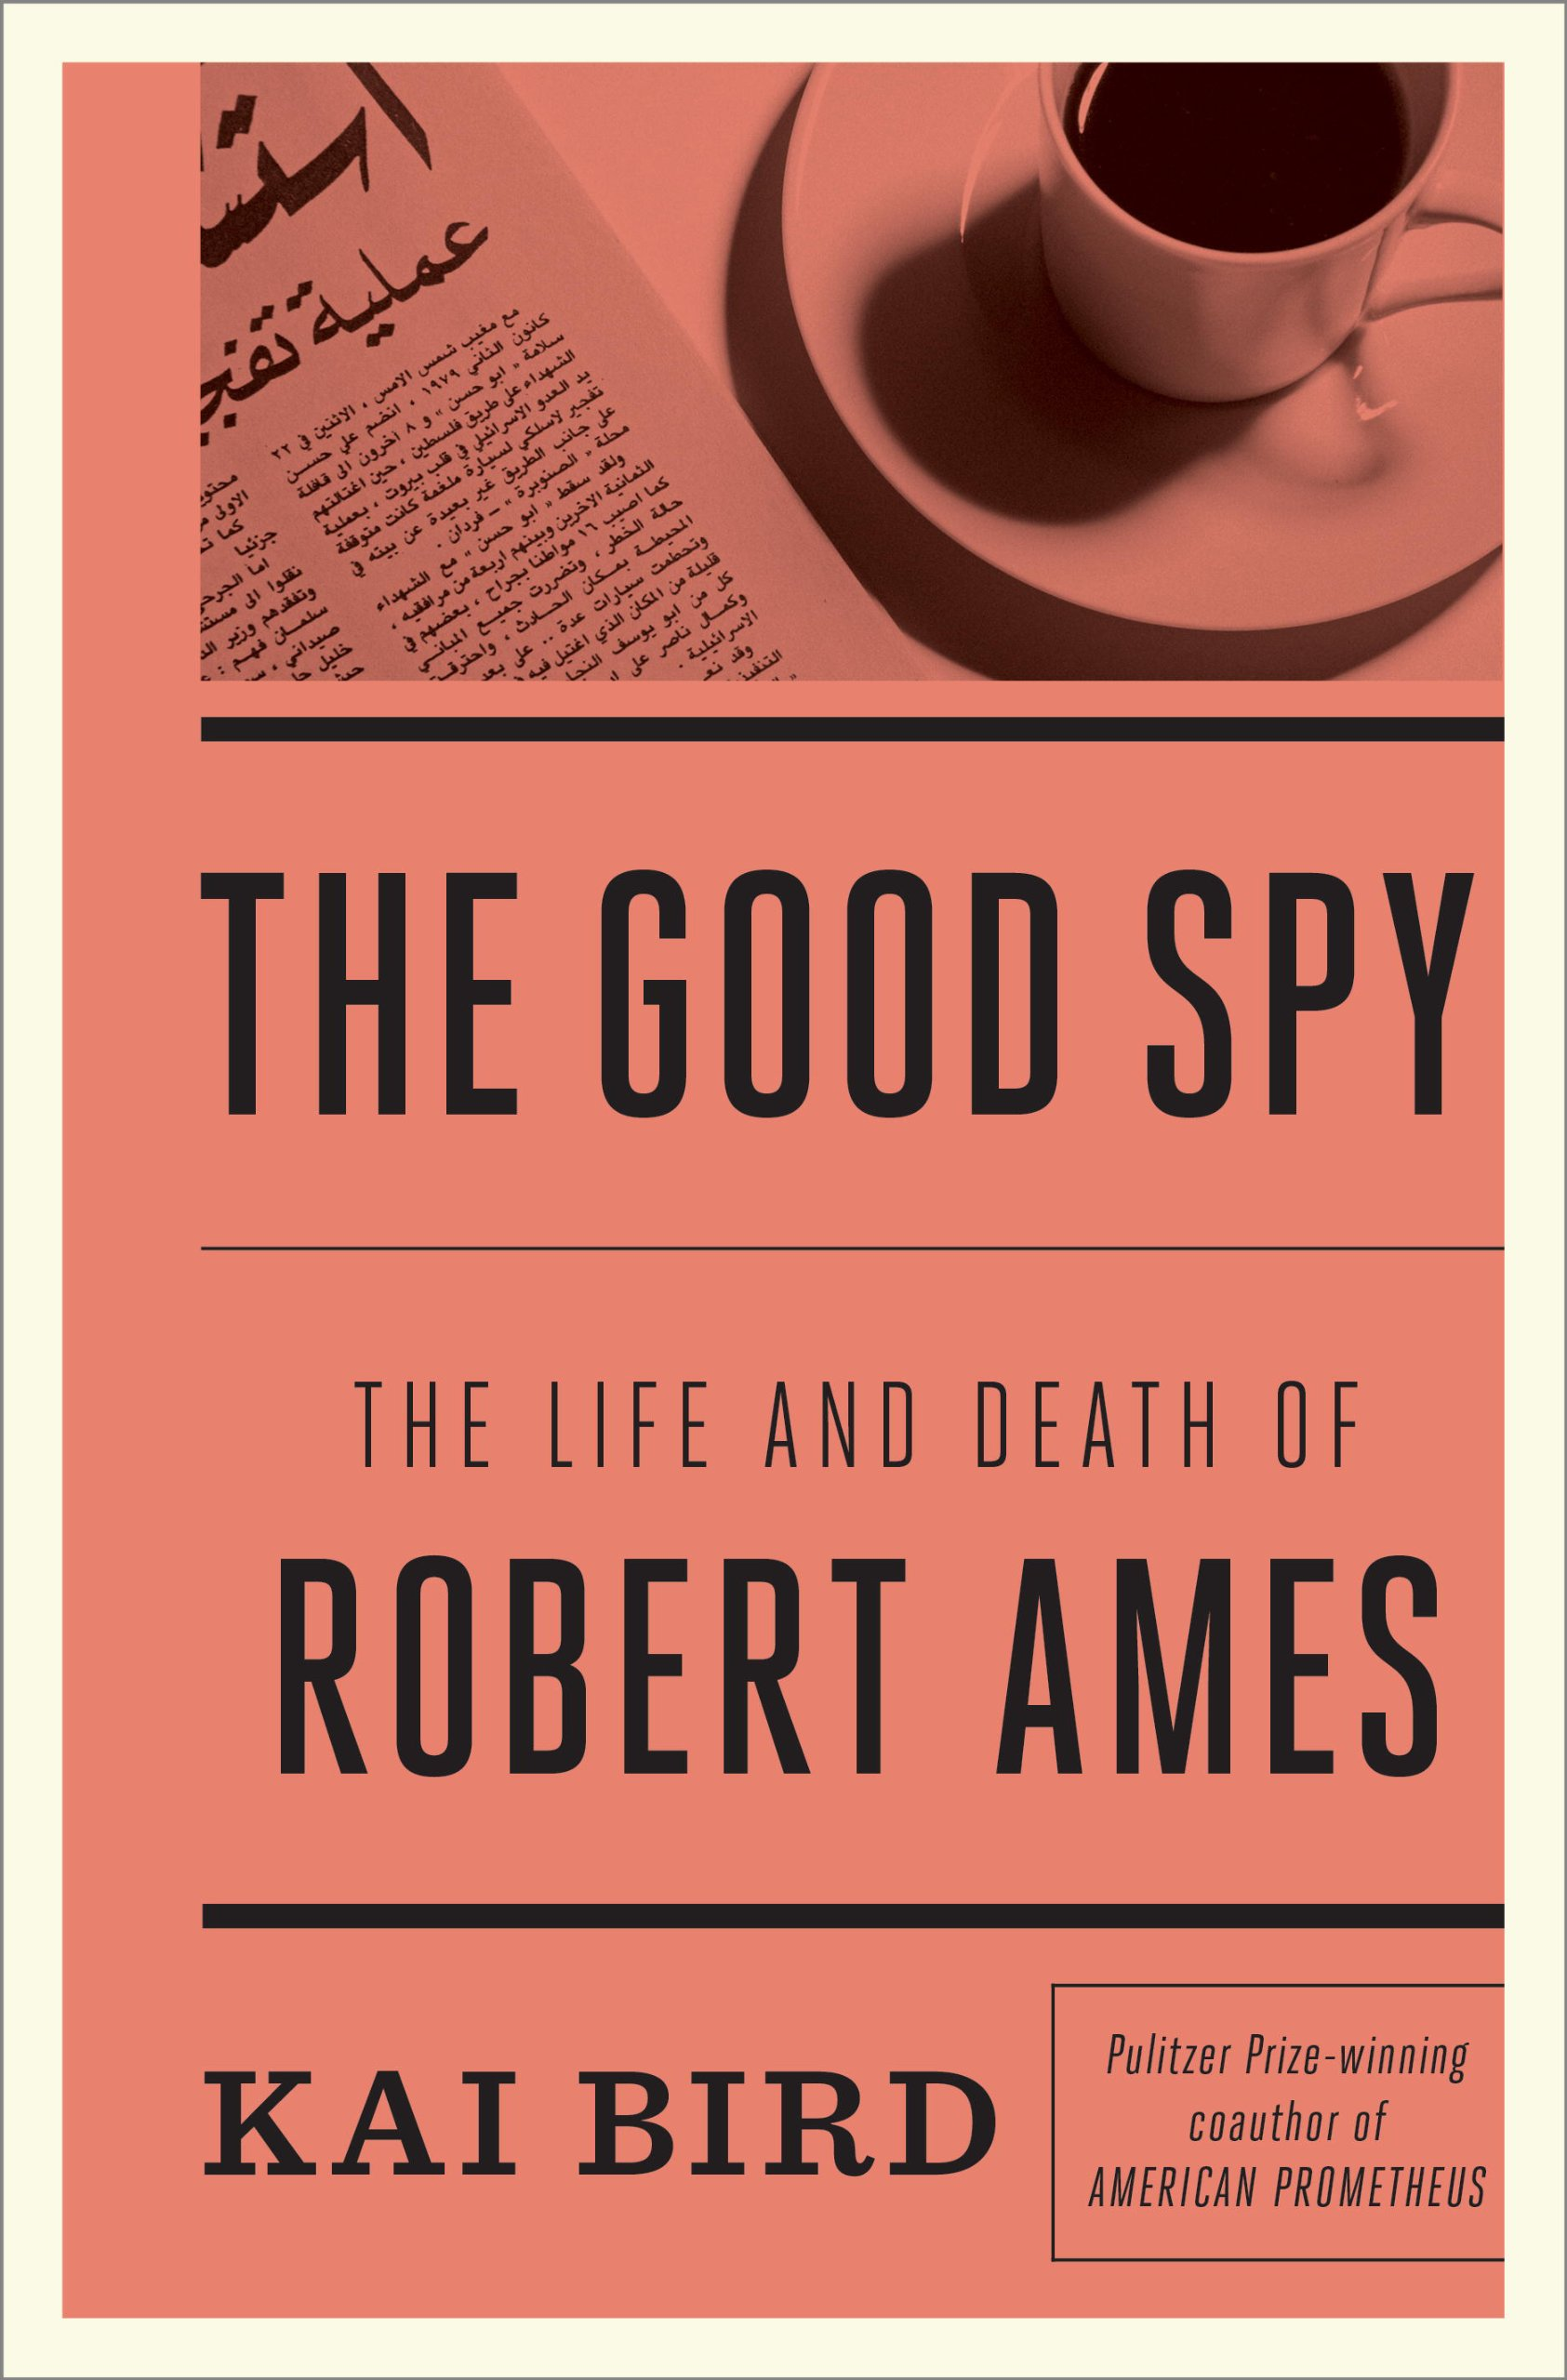 The Good Spy: The Life and Death of Robert Ames (Thorndike Press Large Print Nonfiction) ebook